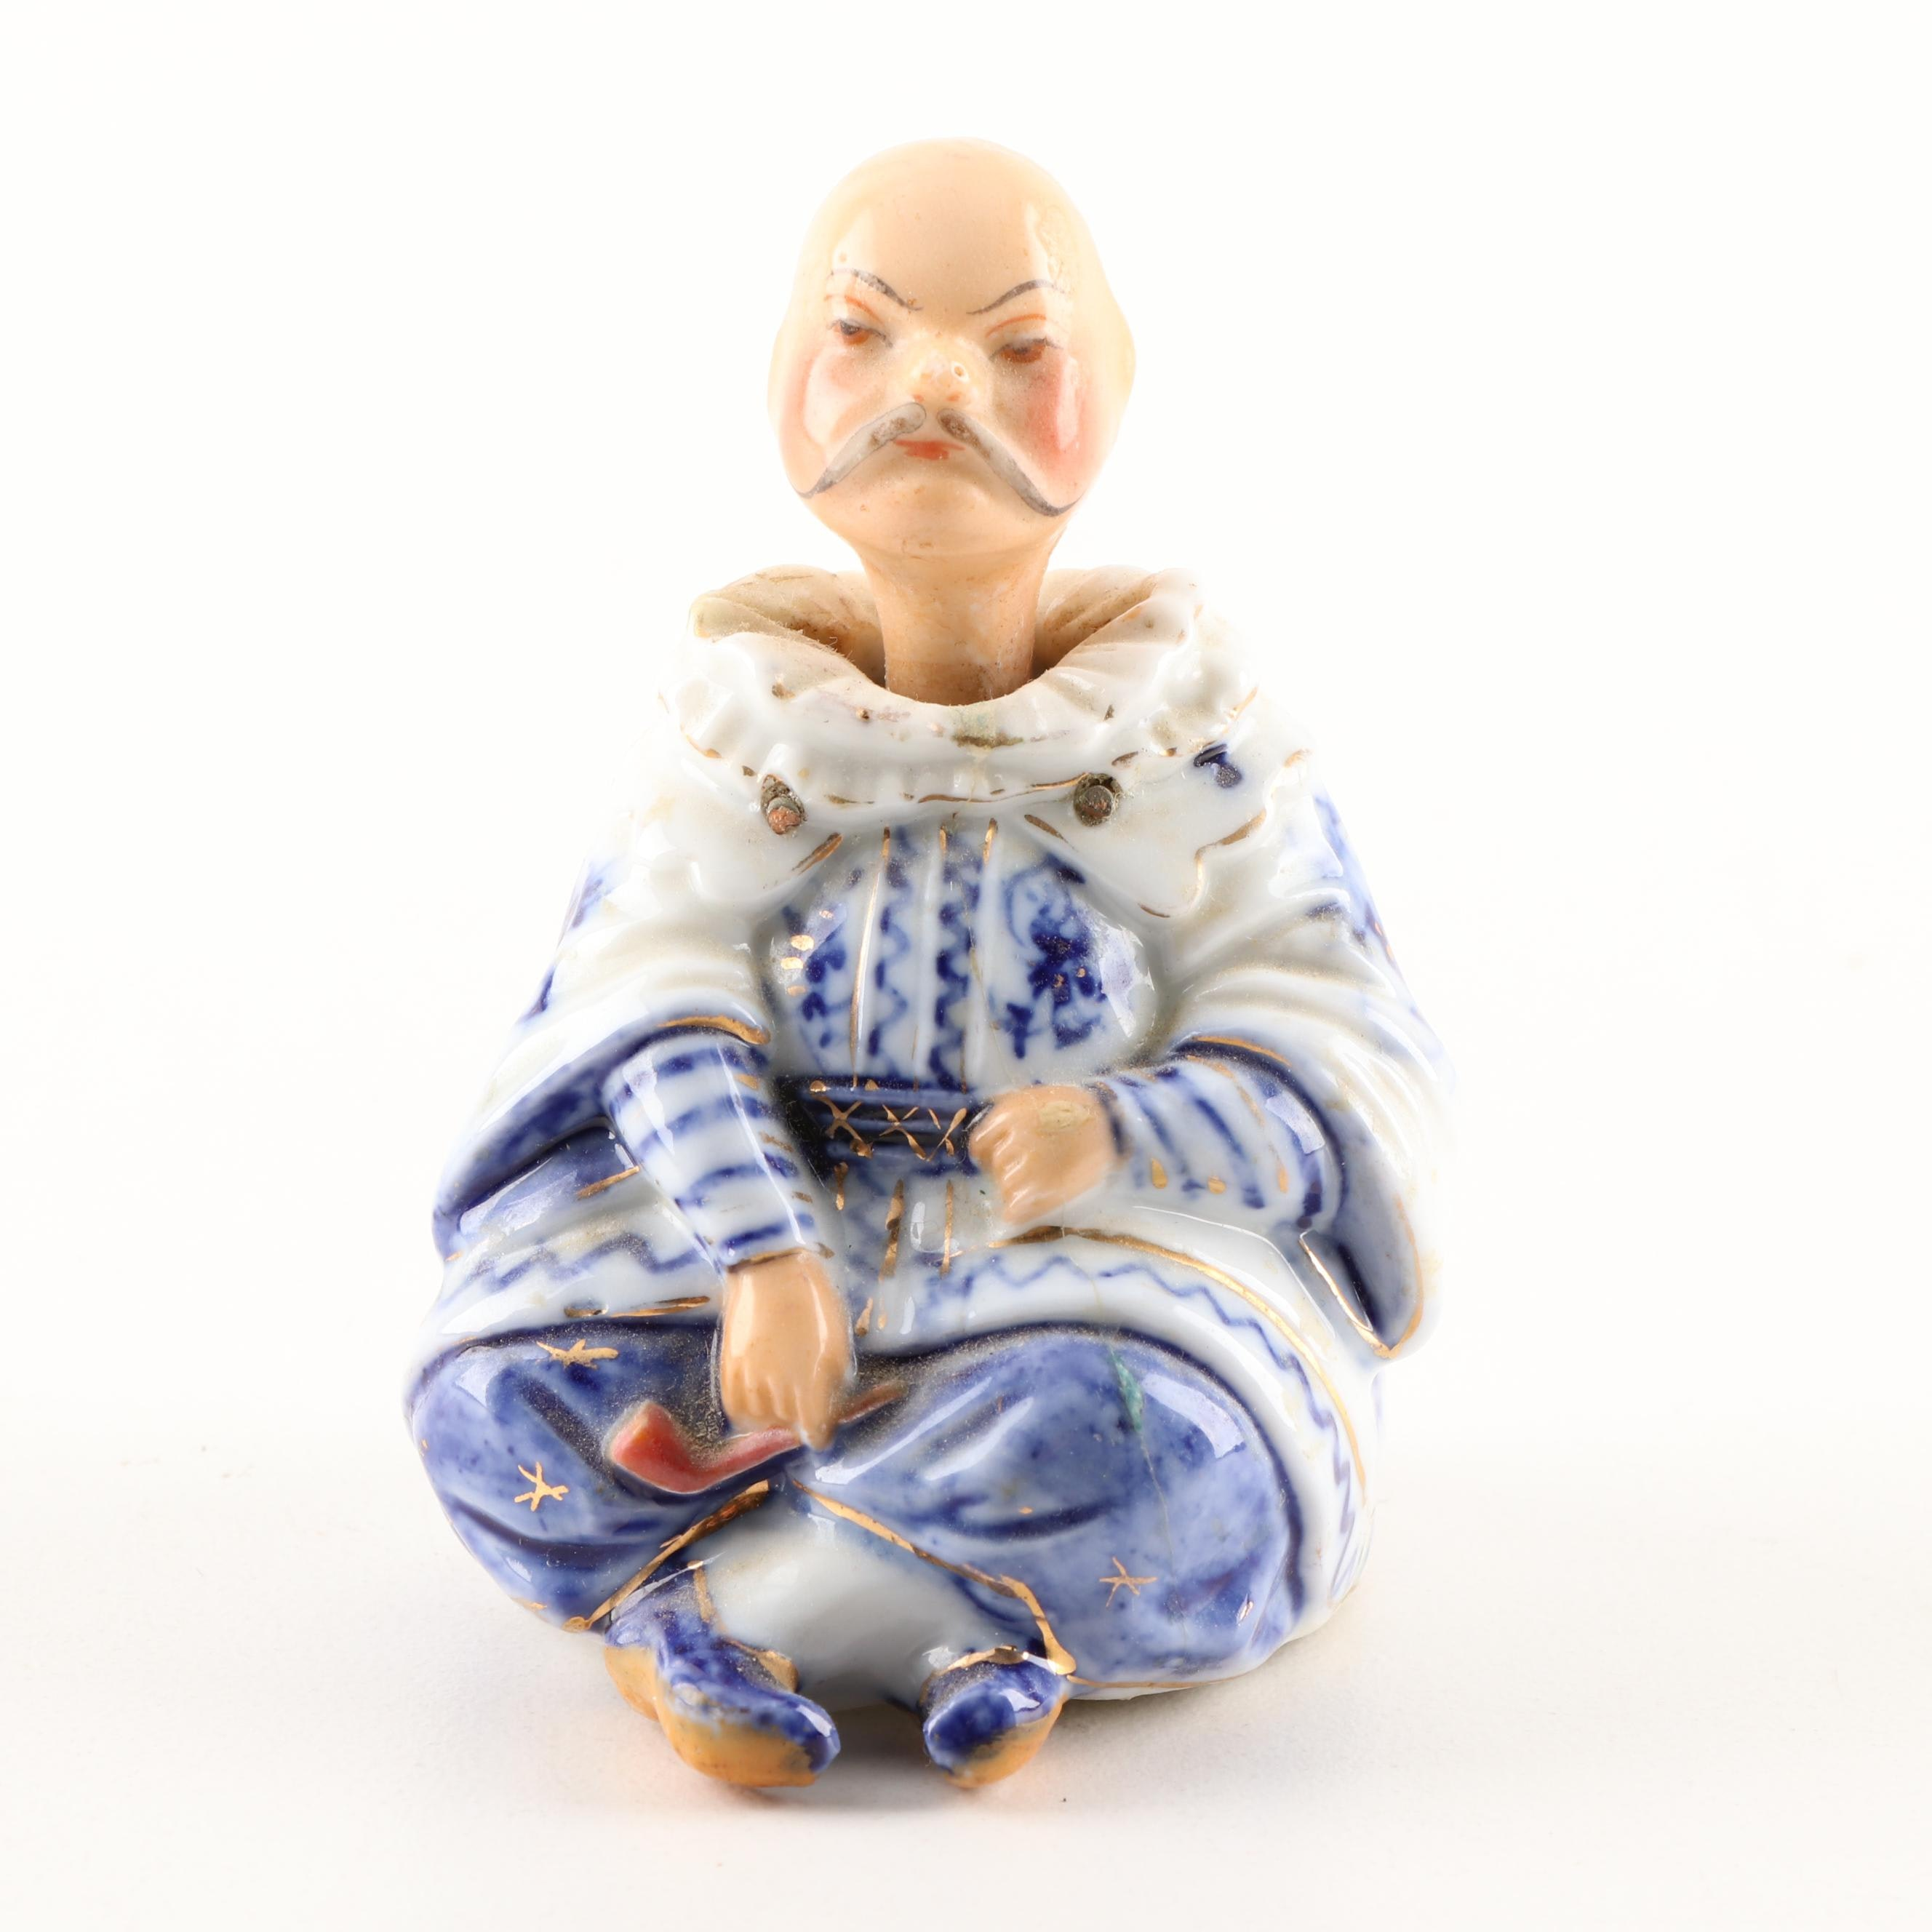 Chinese Inspired Porcelain Nodder Figurine